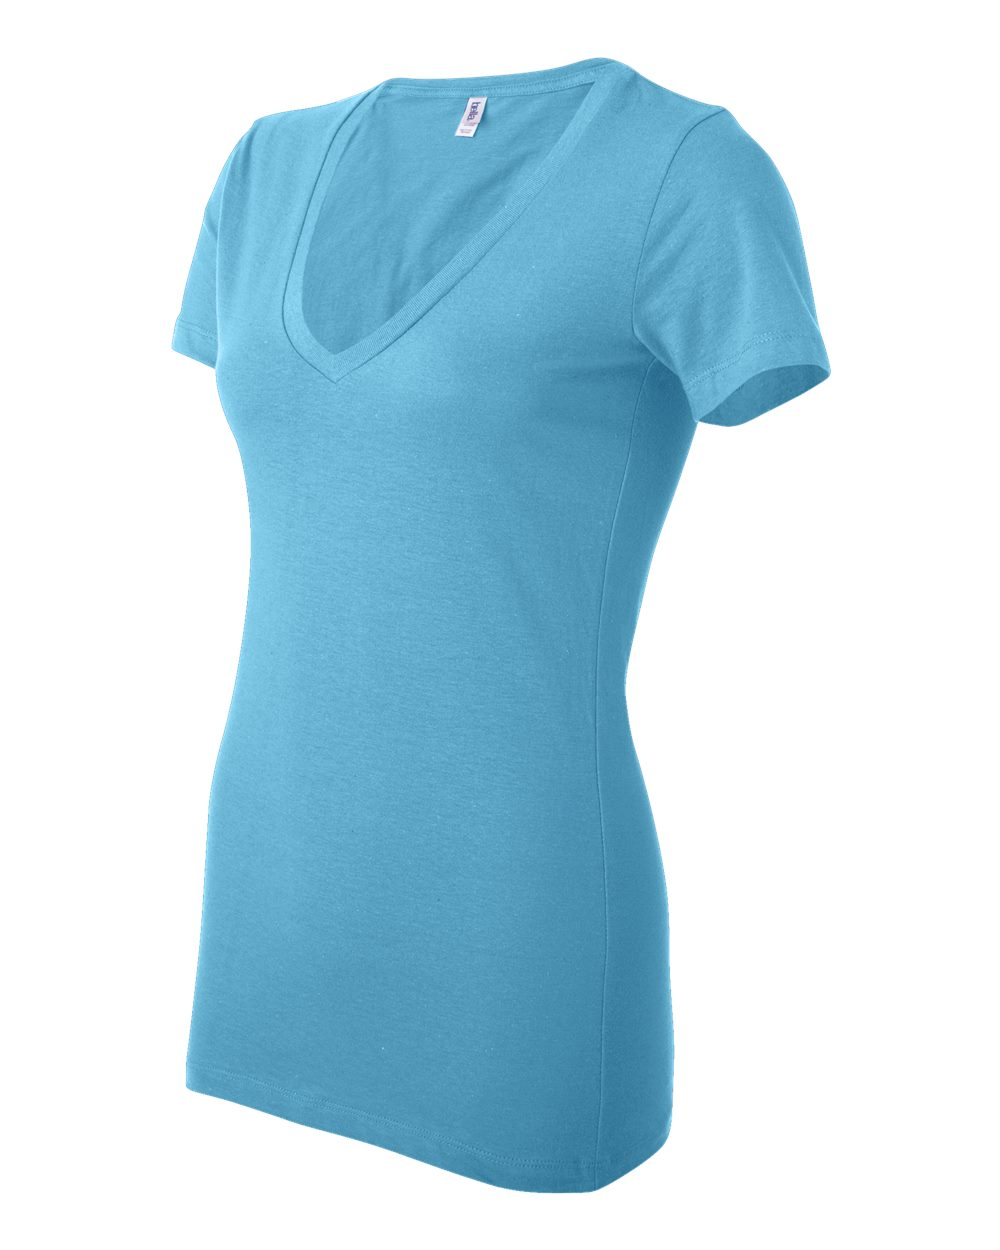 Bella-Canvas-Women-039-s-Jersey-Short-Sleeve-Deep-V-Neck-T-Shirt-B6035-S-2XL thumbnail 15